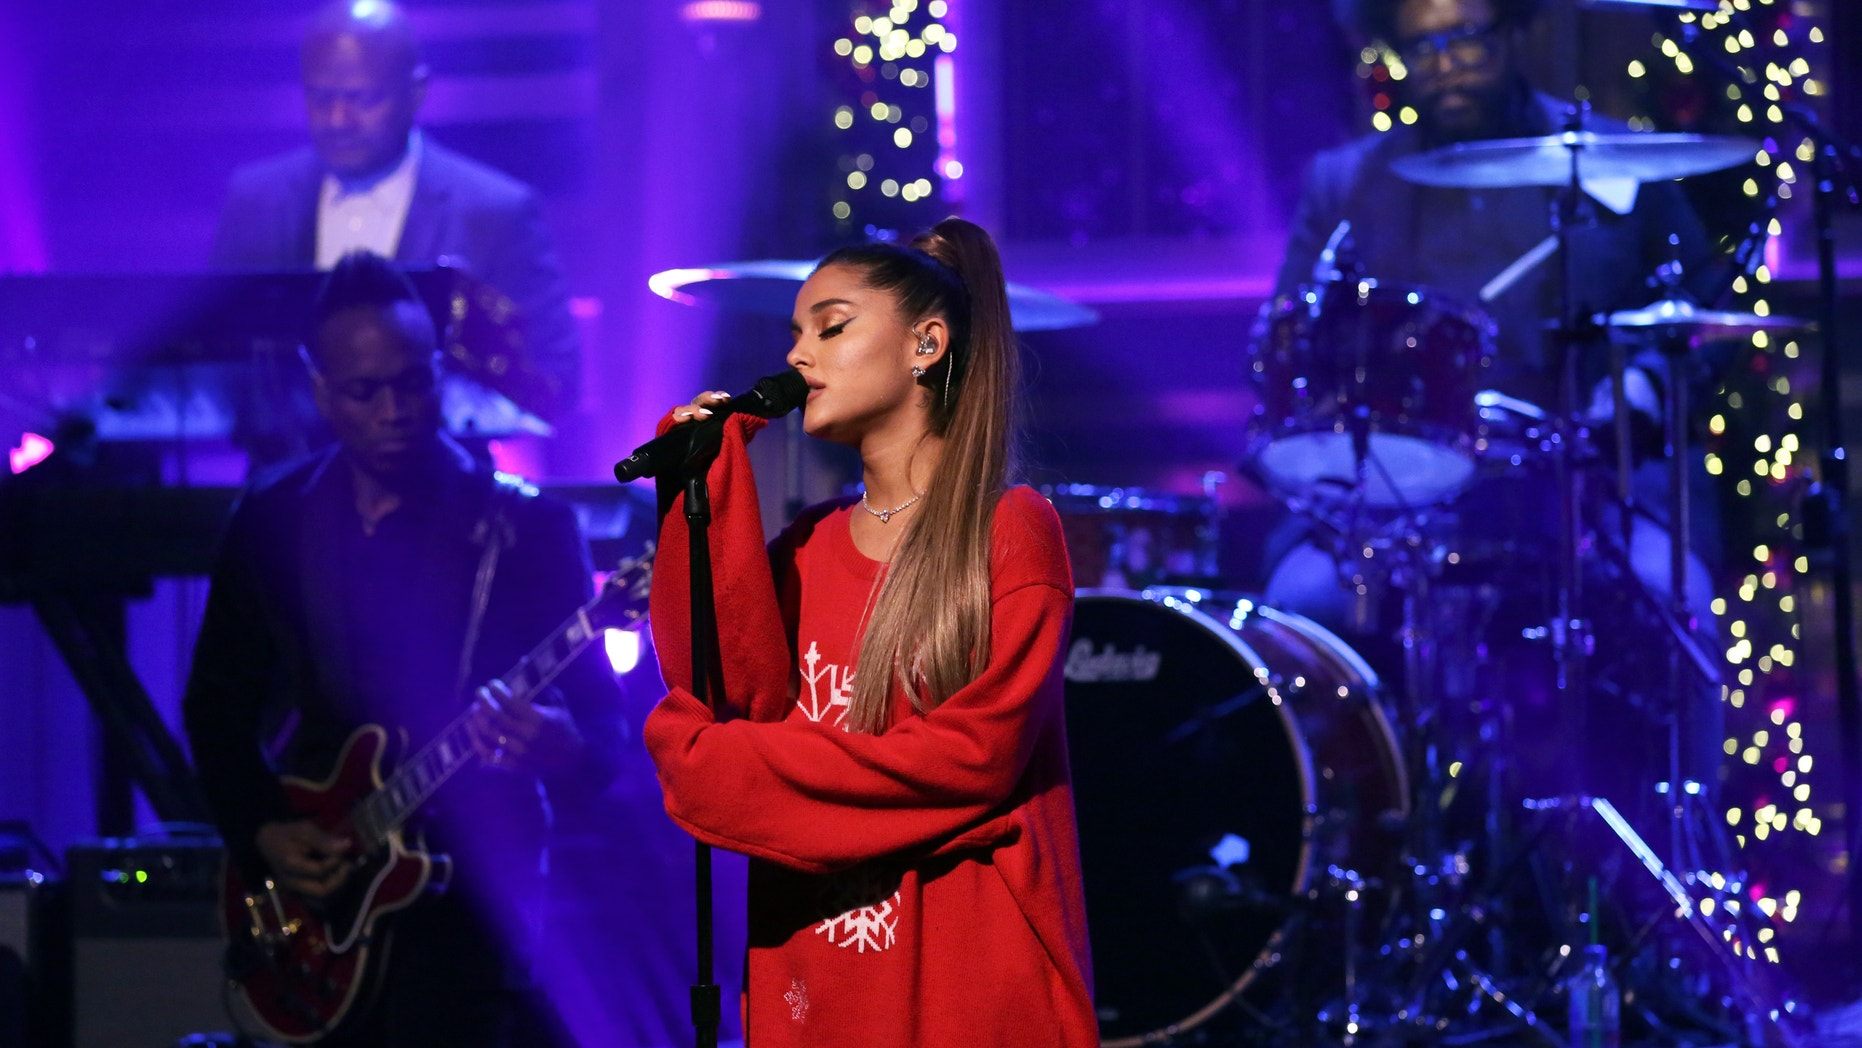 Ariana Grande cancels New Year's Eve weekend show in Las Vegas